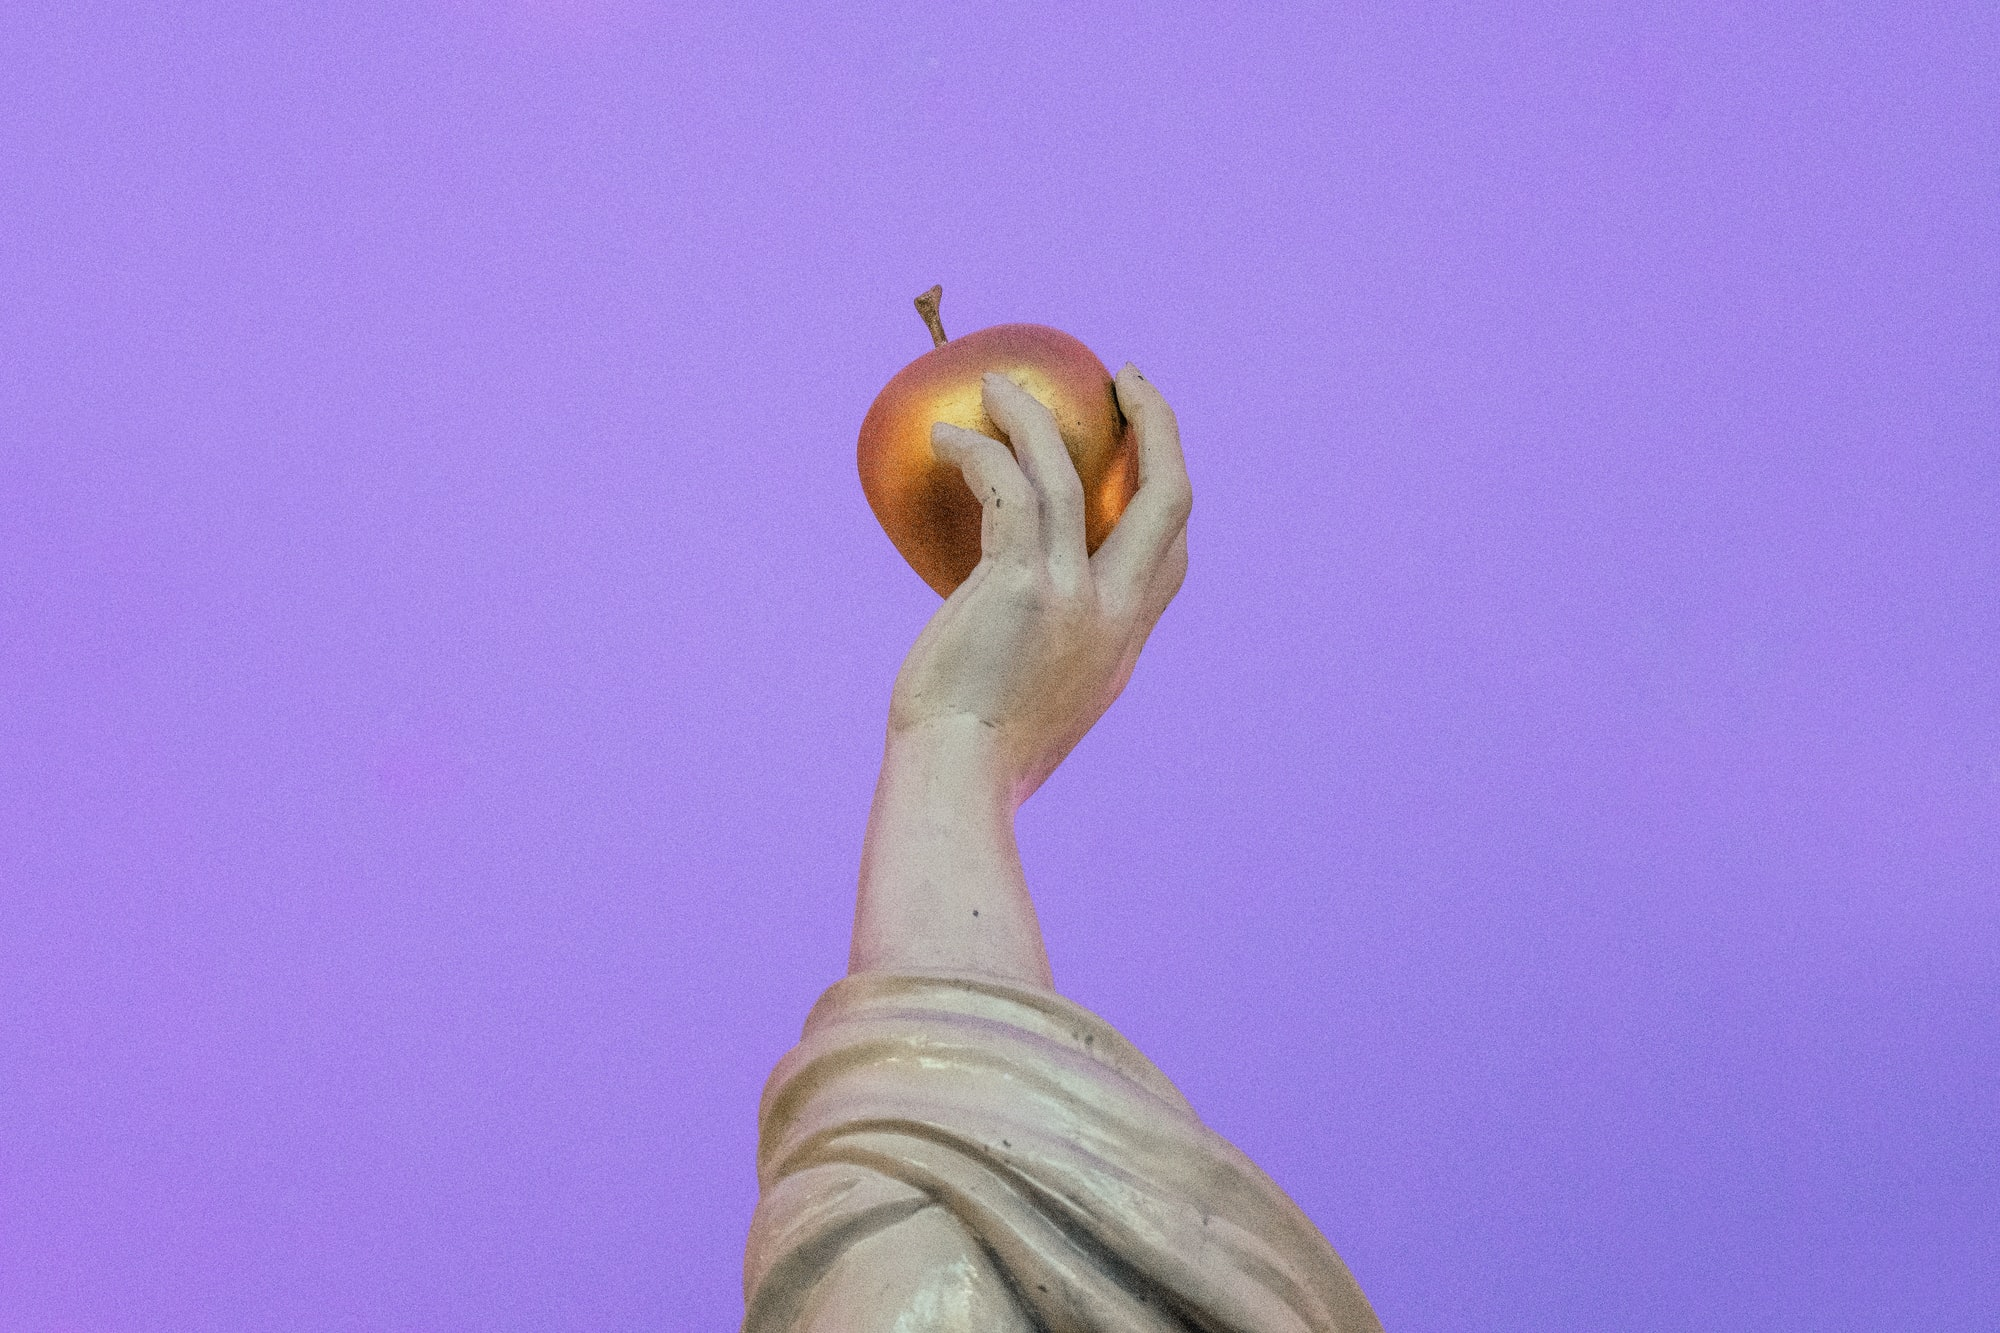 A Brief Mythical History of the Apple